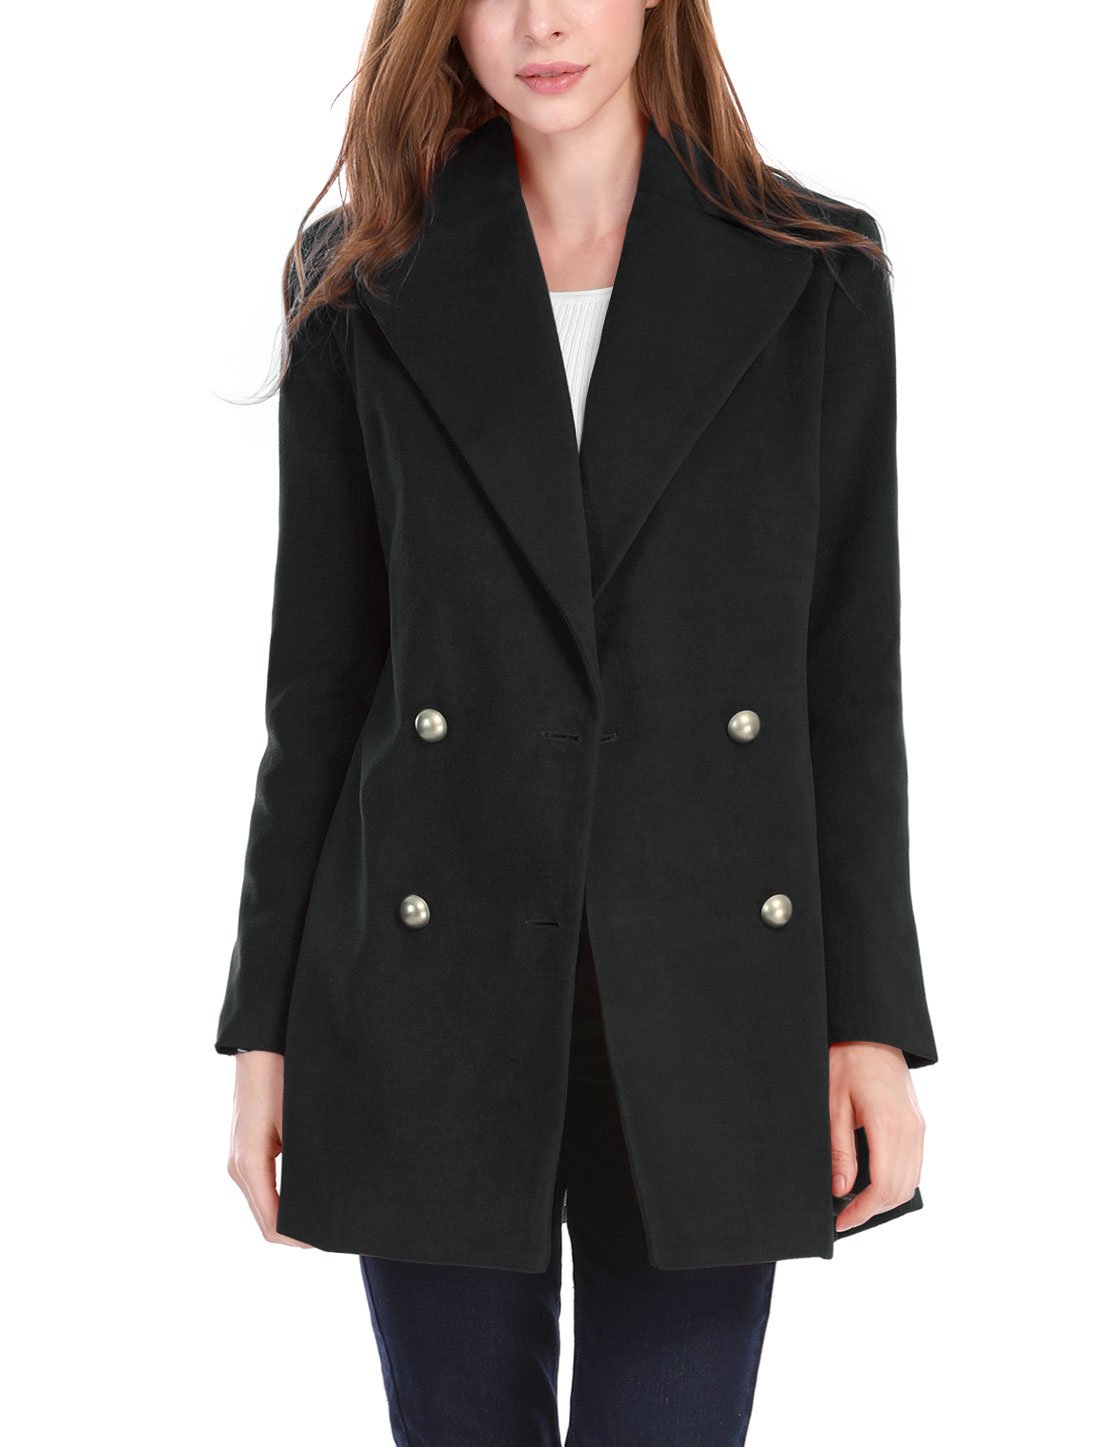 Allegra K Women's Notch Lapel Pockets Double Breasted Coat S Black